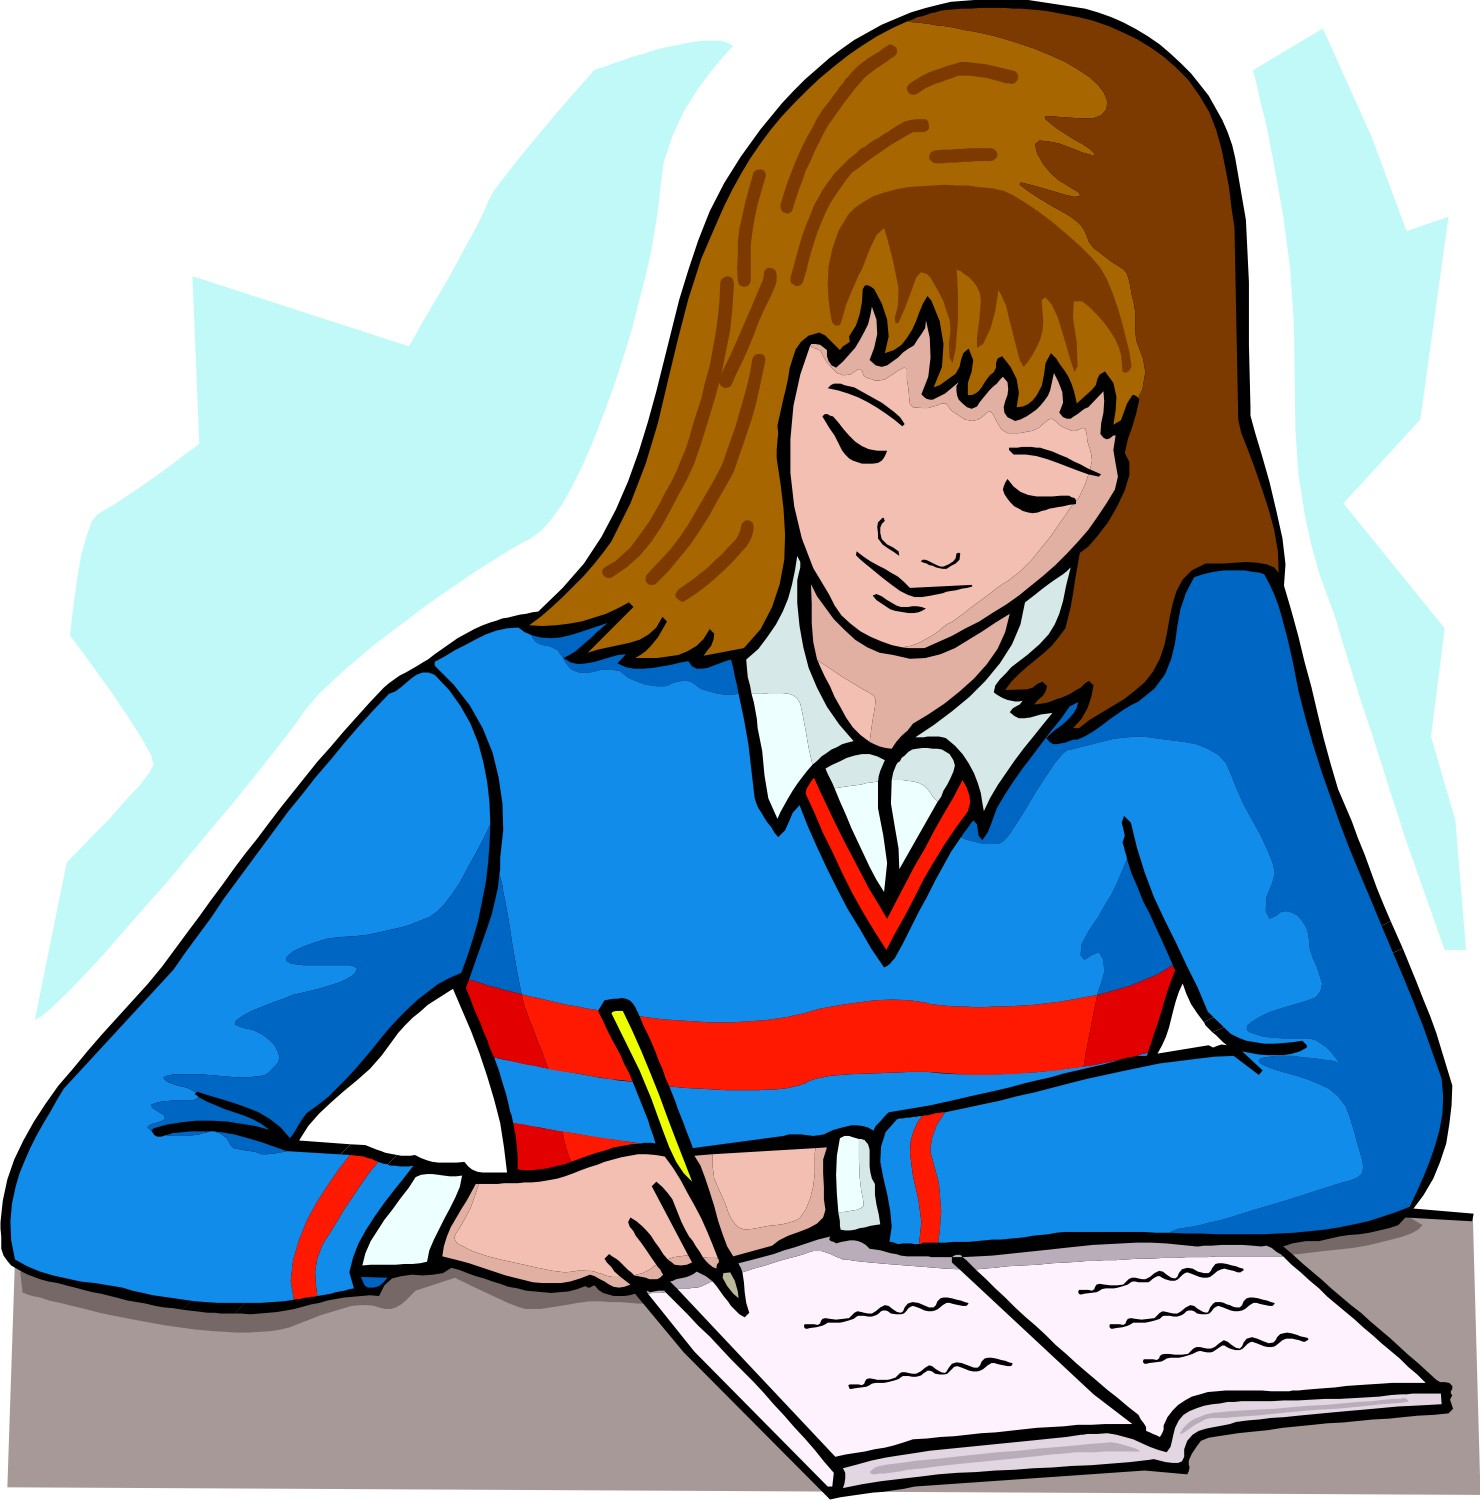 homework clipart clipart kid help children do homework clipart buy a essay for cheap